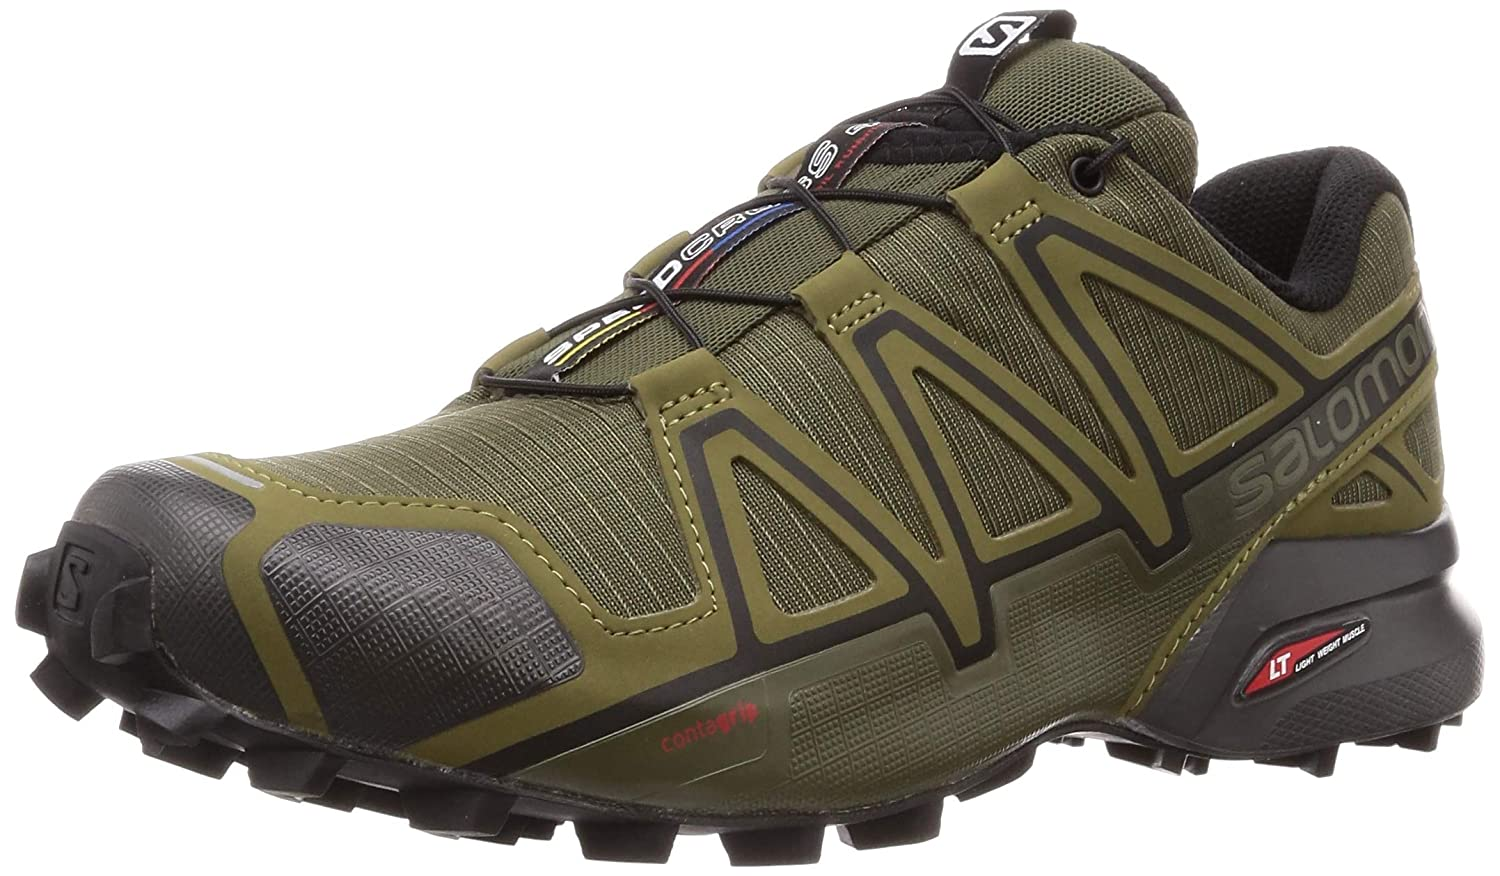 Salomon Herren Speedcross 4 Wide Traillaufschuhe